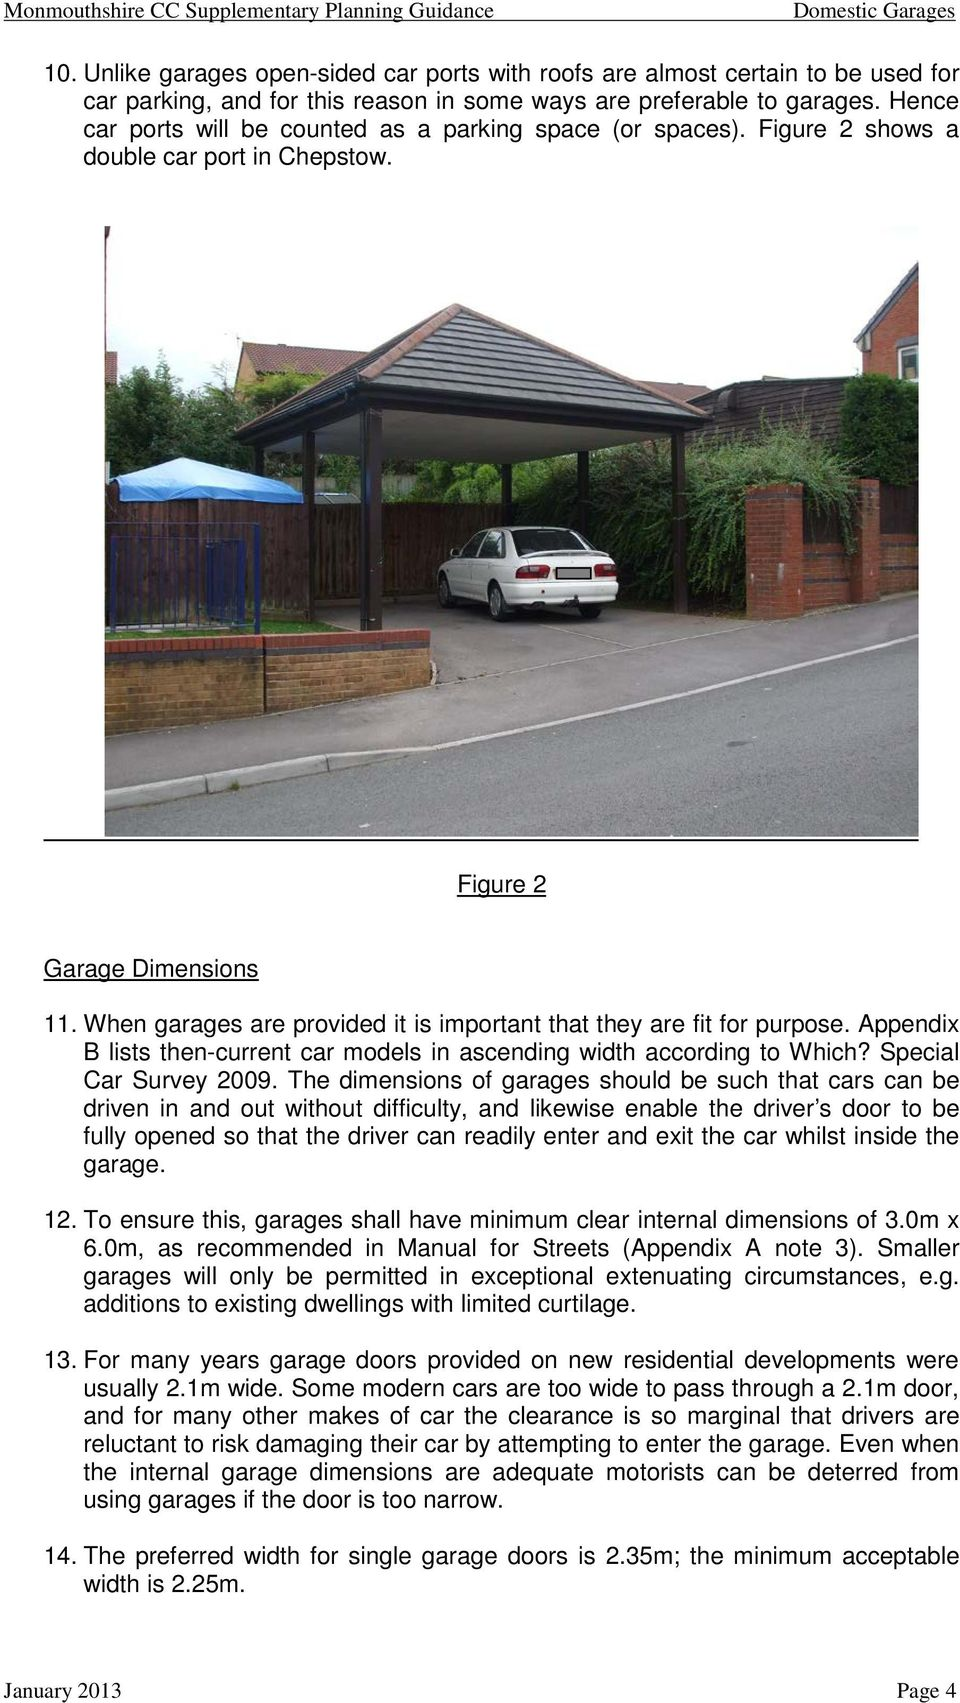 When garages are provided it is important that they are fit for purpose. Appendix B lists then-current car models in ascending width according to Which? Special Car Survey 2009.